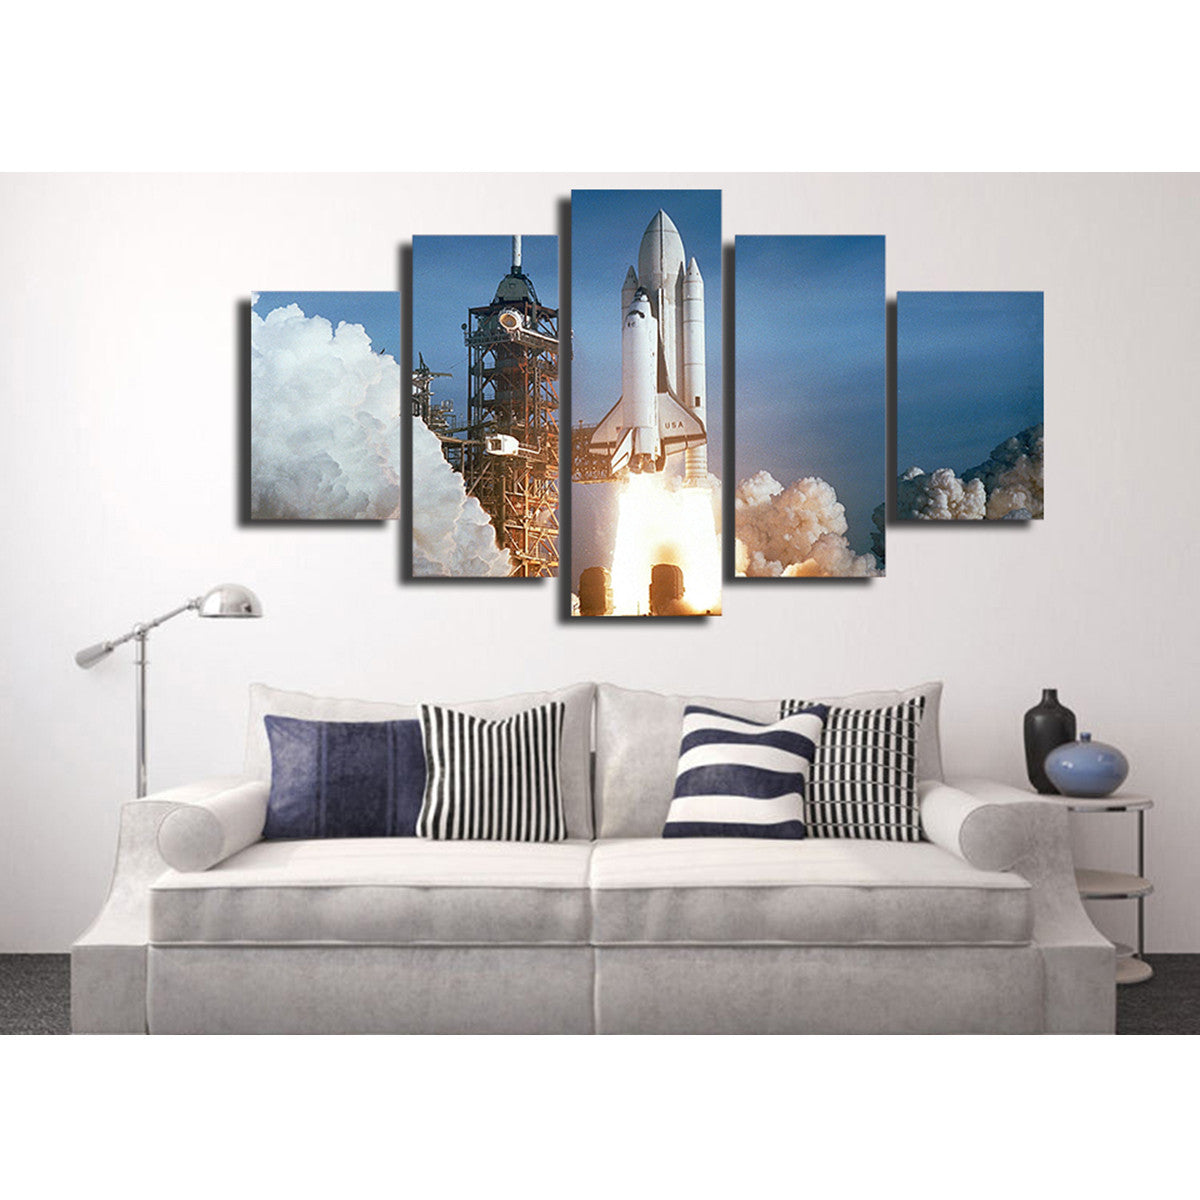 Rocket Launch 5 Piece Canvas